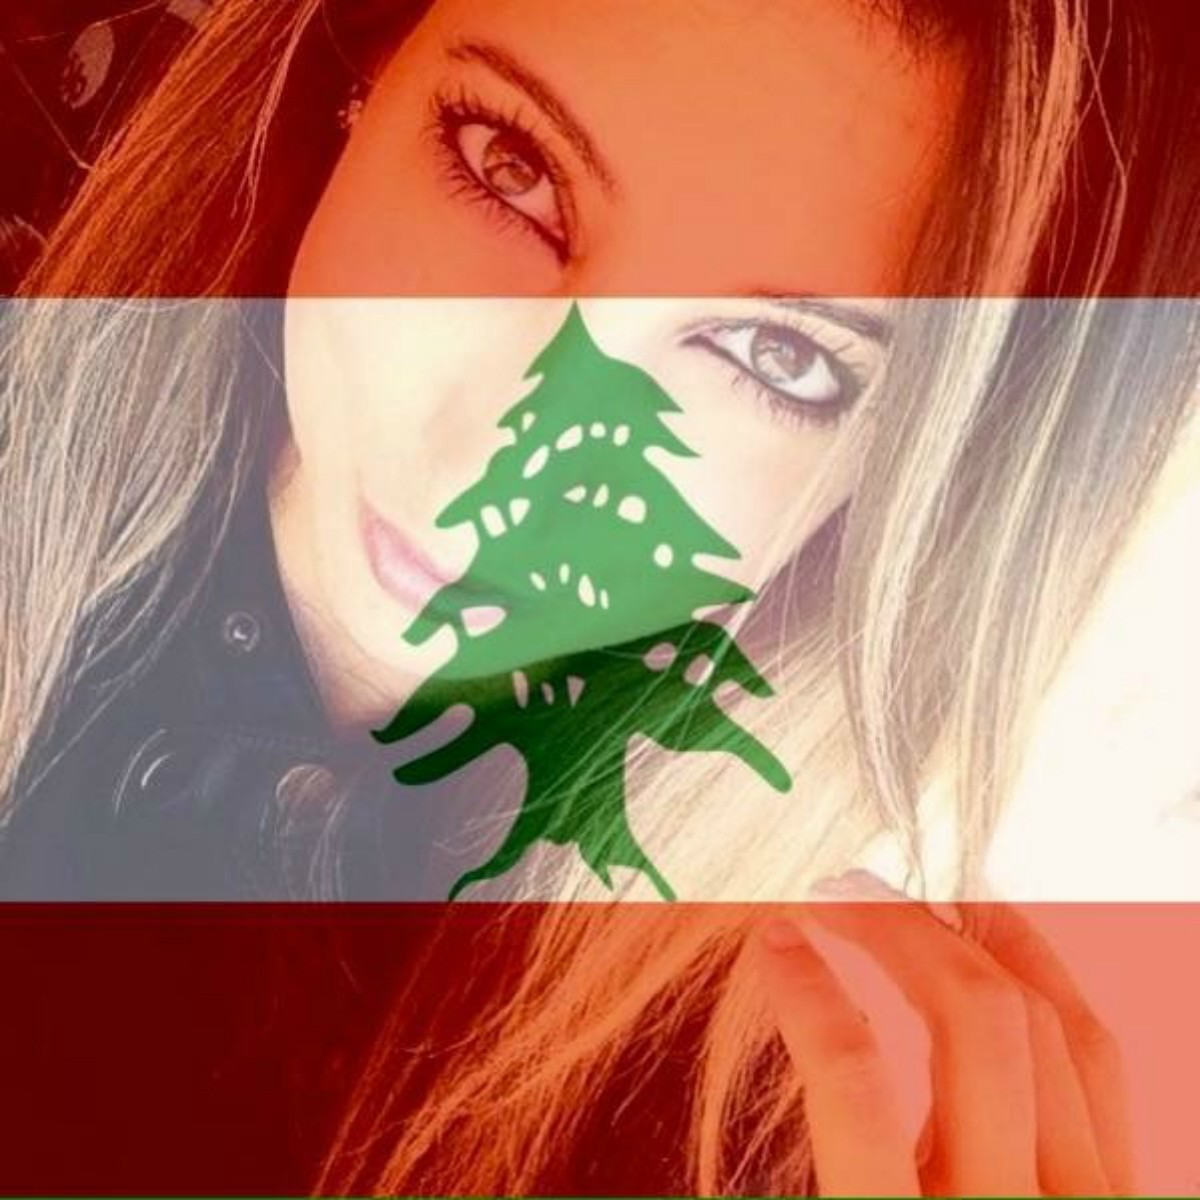 Arlene Yammine, a New York native living in Texas, has added a Lebanese-flag filter to her Facebook profile.